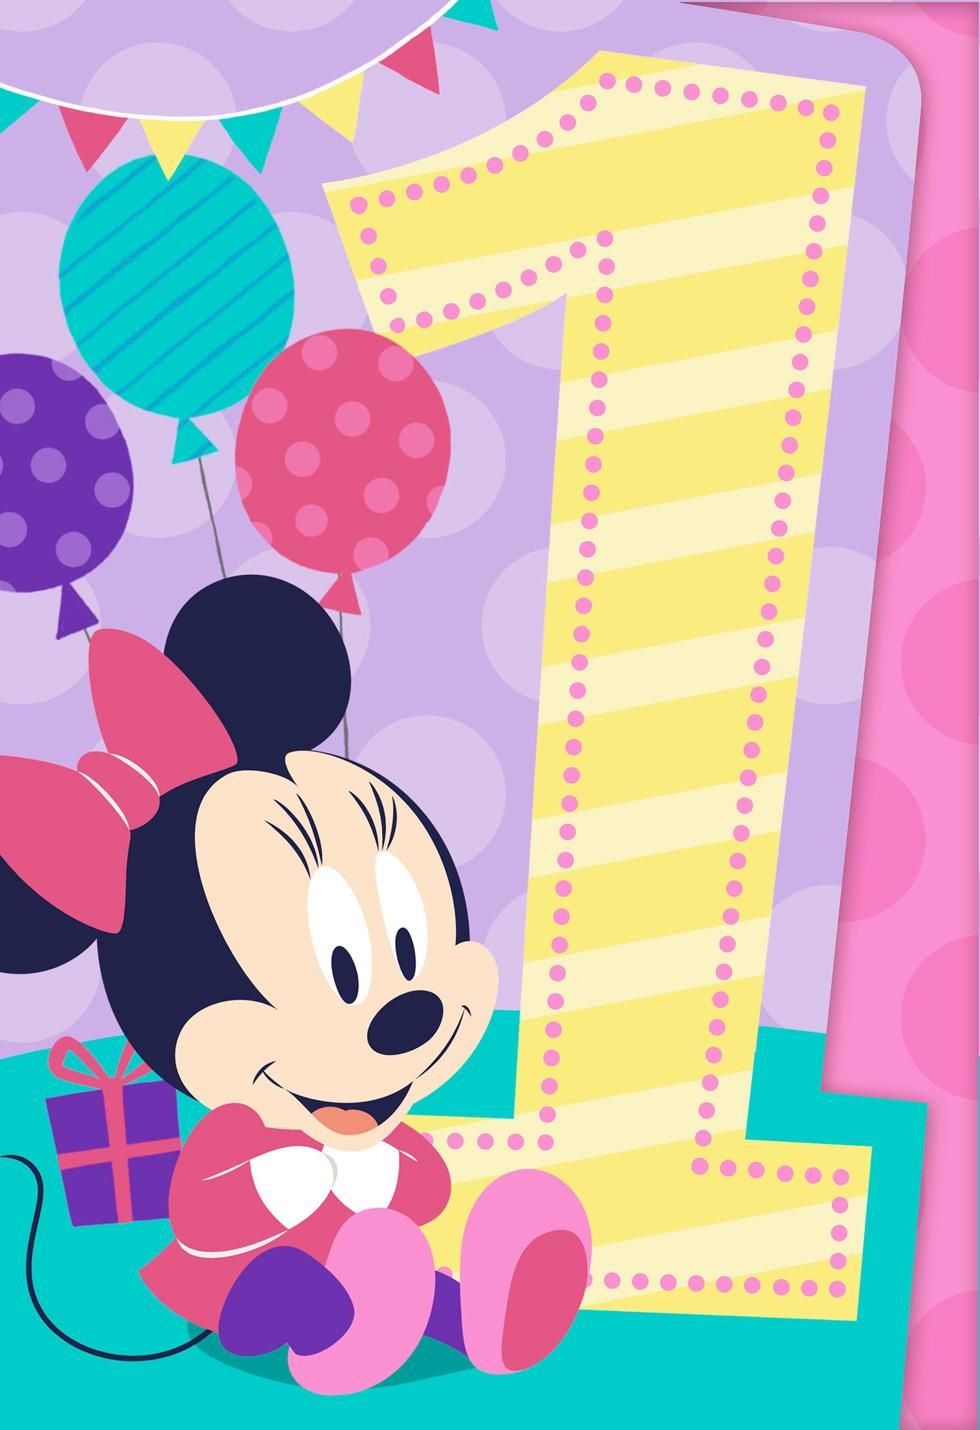 Minnie Mouse Musical 1st Birthday Card Greeting Cards Hallmark Sam 1st Birthday Cards Birthday Greeting Cards Beautiful Birthday Cards